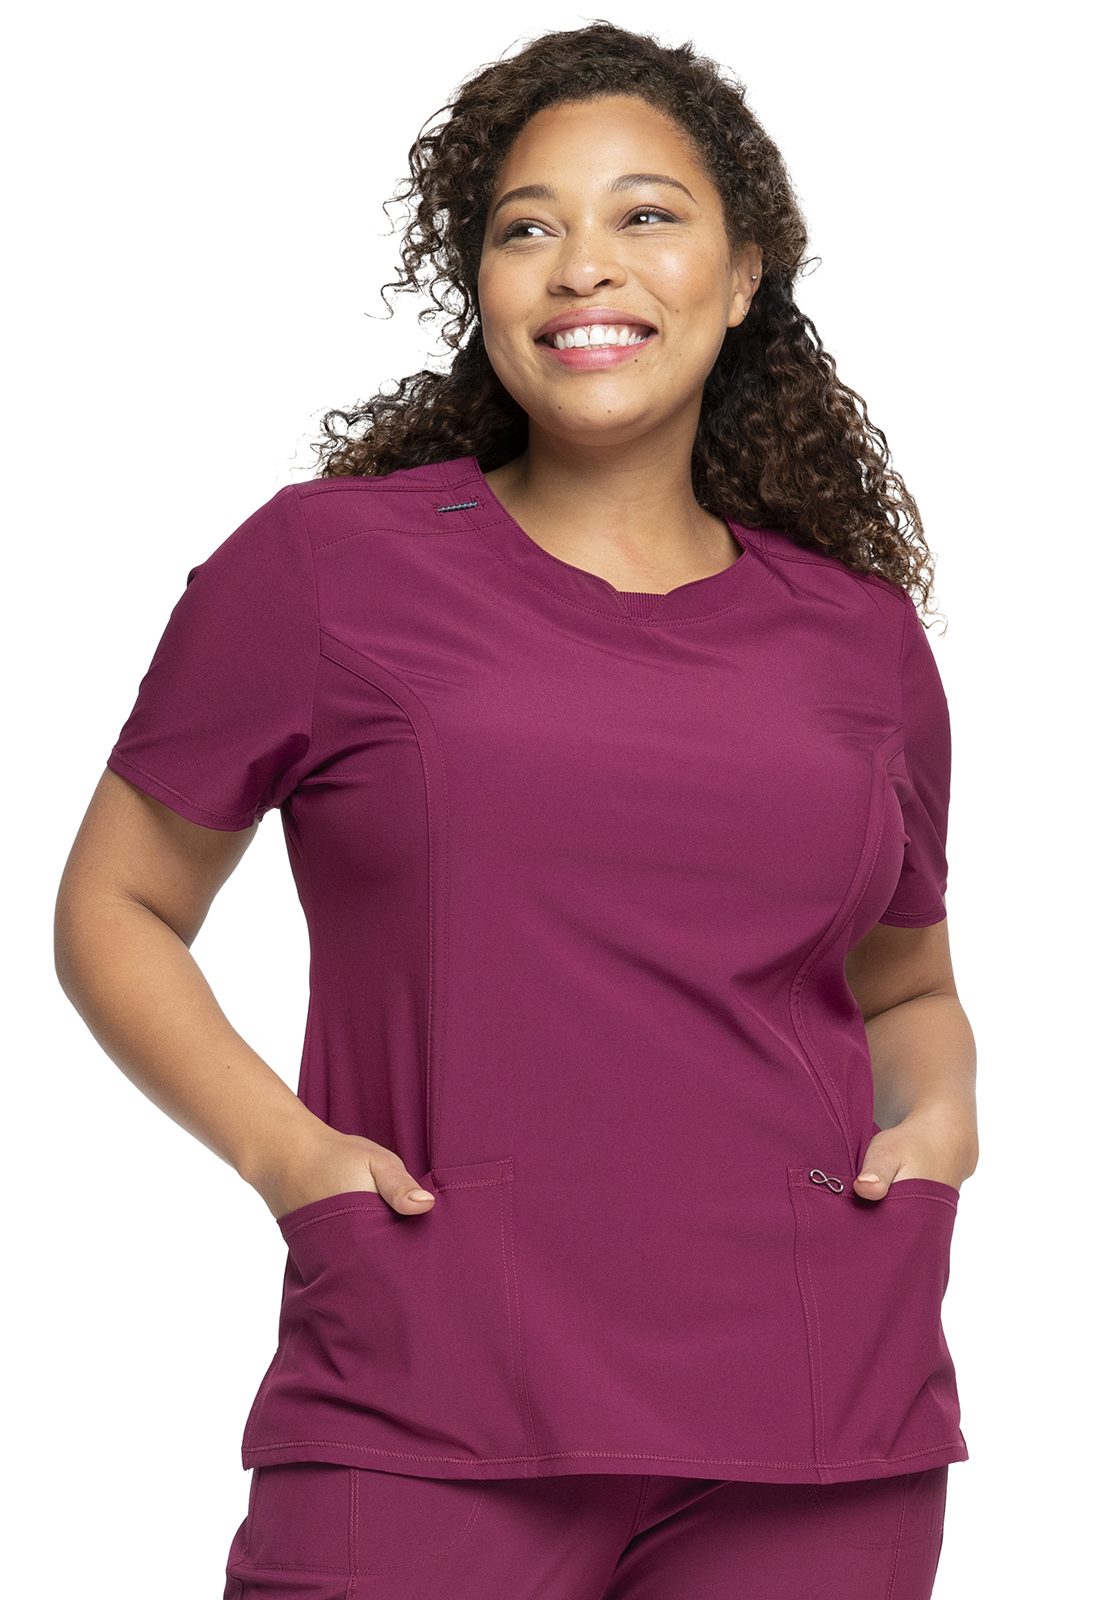 e8a5de88add Infinity Round Neck Top in Wine 2624A-WNPS from Cherokee Scrubs at ...